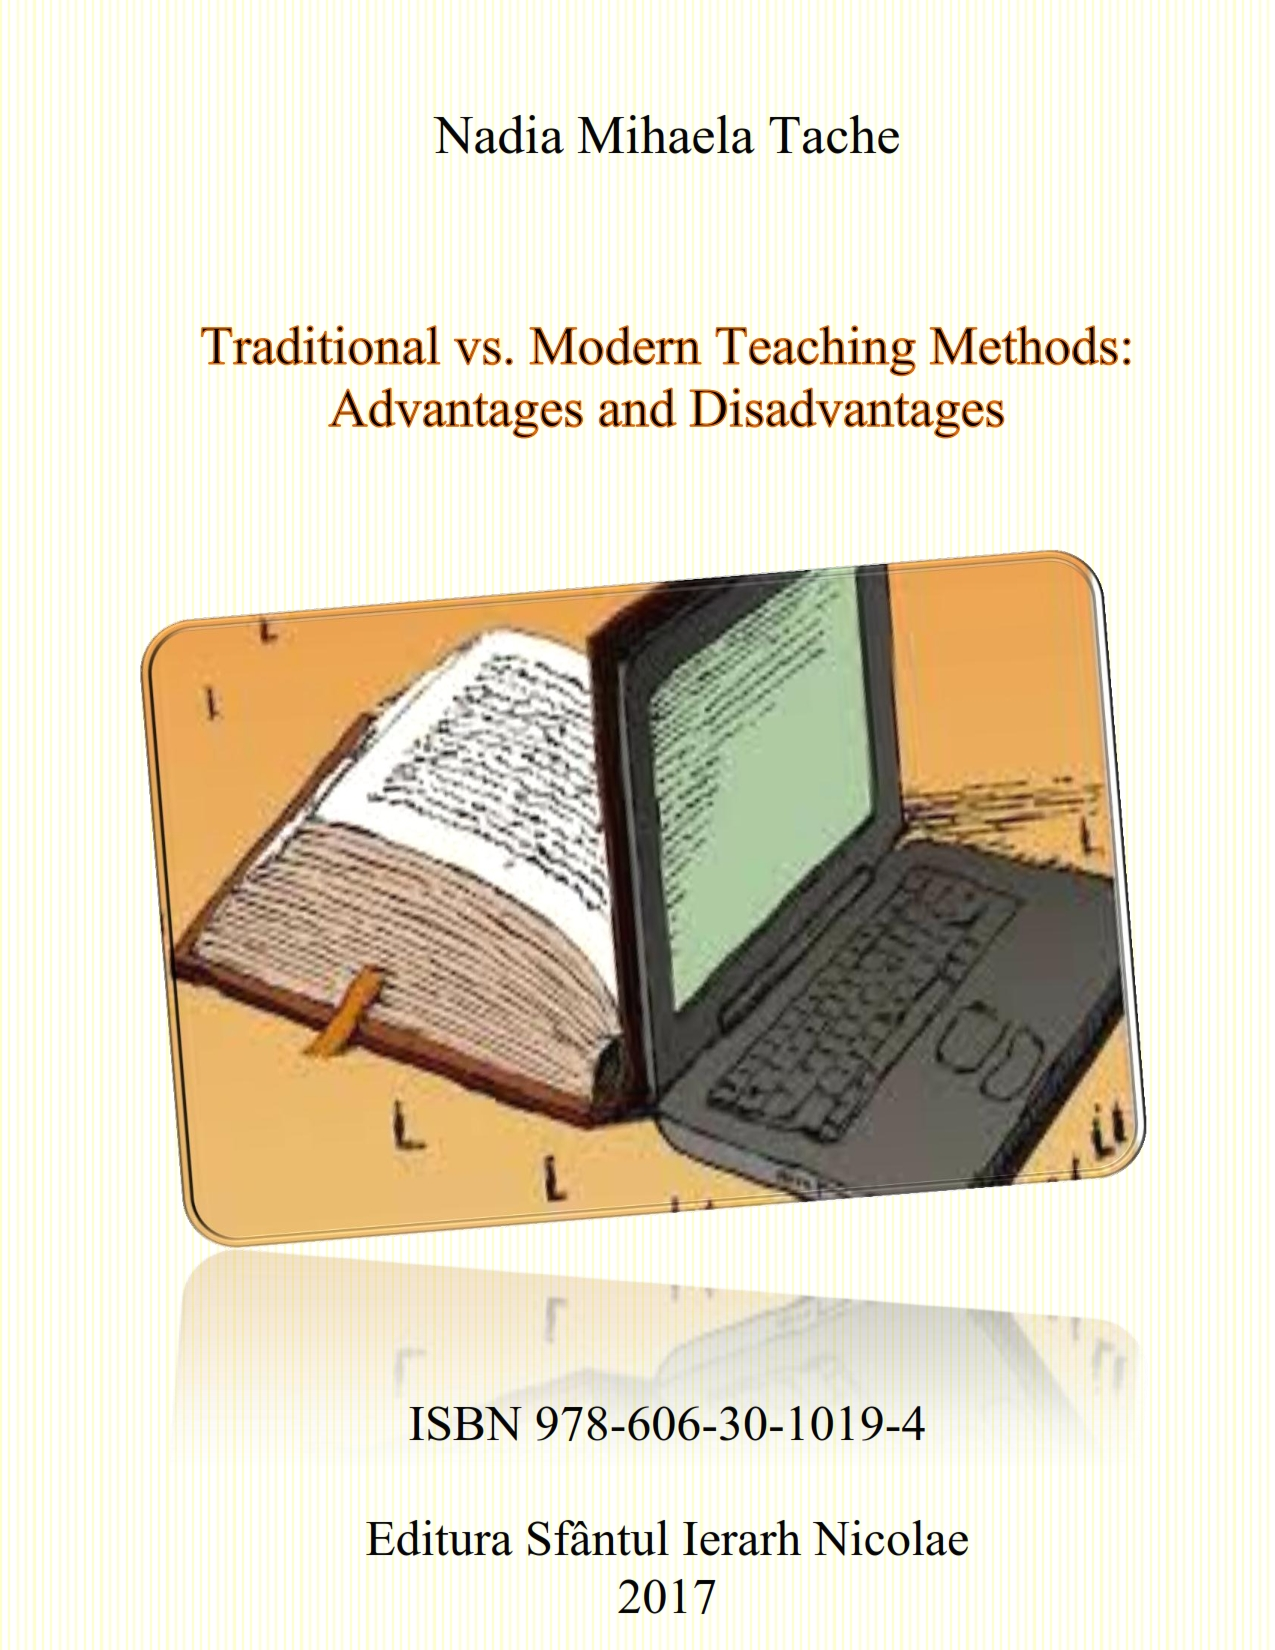 advantage of modern teaching Essay on advantages and disadvantages of modern education system where we describe in detail the primary education methods & benefits of technology in society.